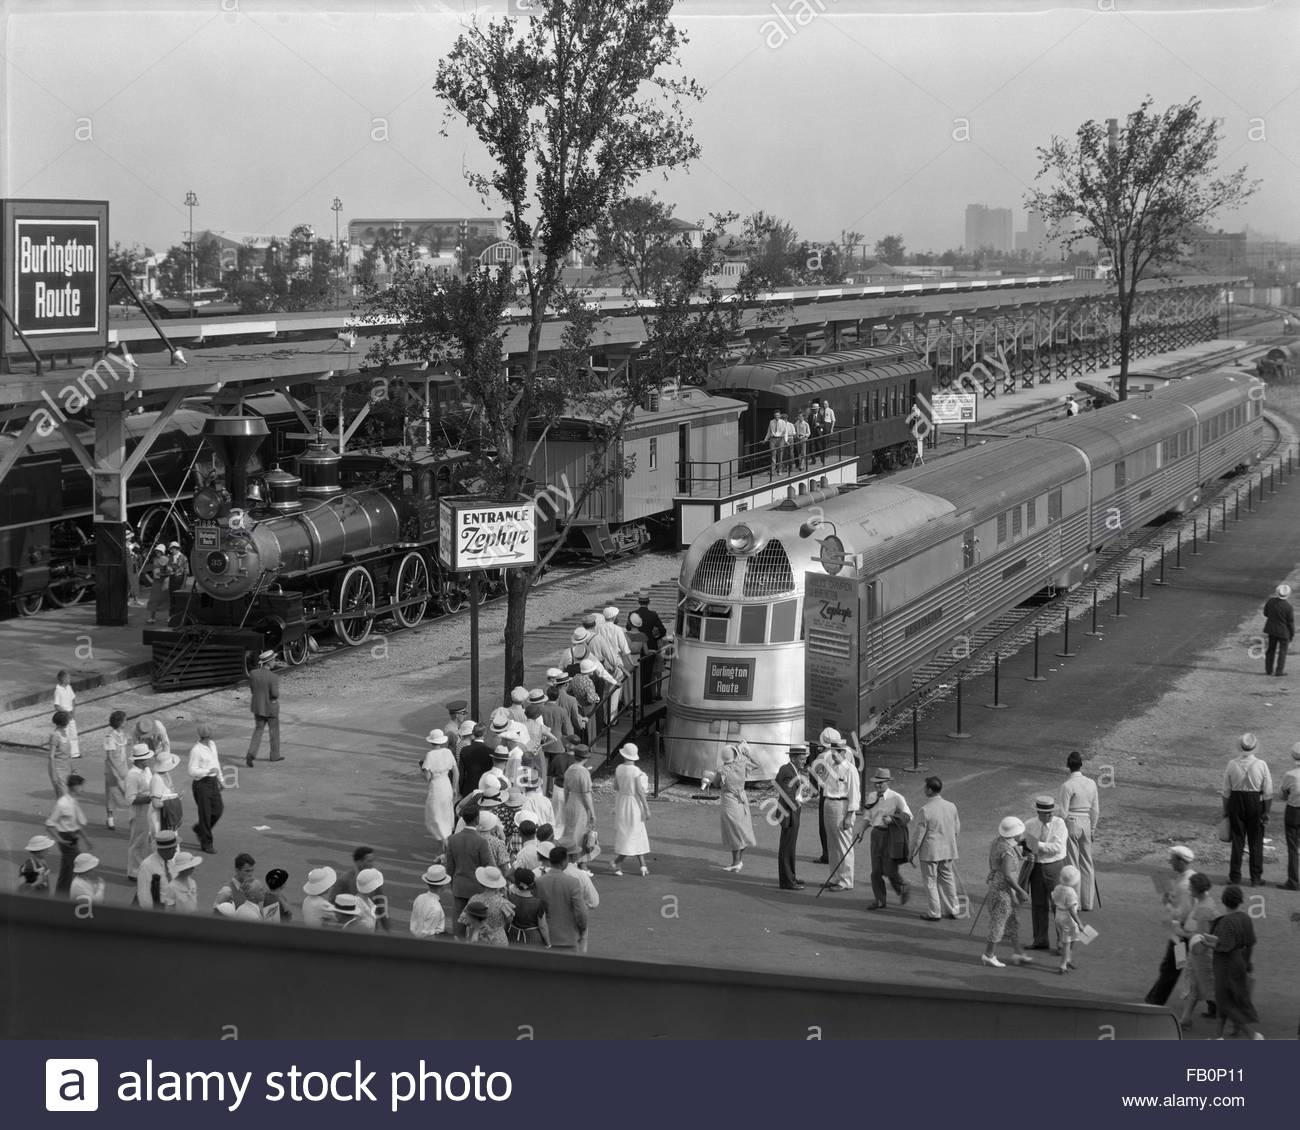 Burlington Zephyr exhibit at the Century of Progress, 1933. View of the CB and Q Railroad exhibit located just south - Stock Image